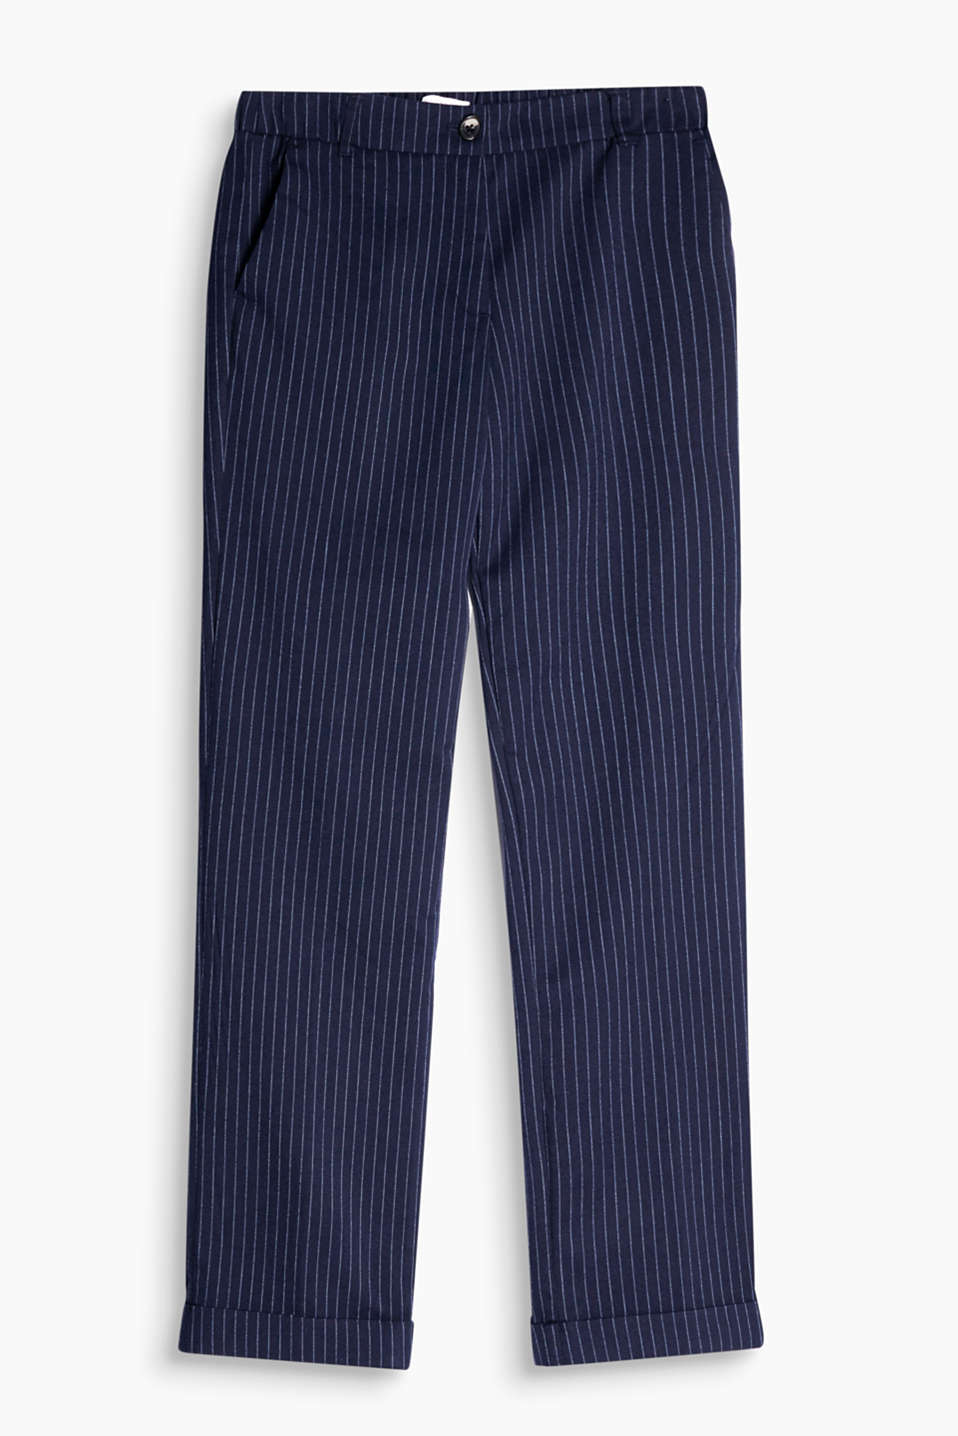 Smart pinstripe trousers with a partial elasticated waistband, pressed pleats and turn-up hems